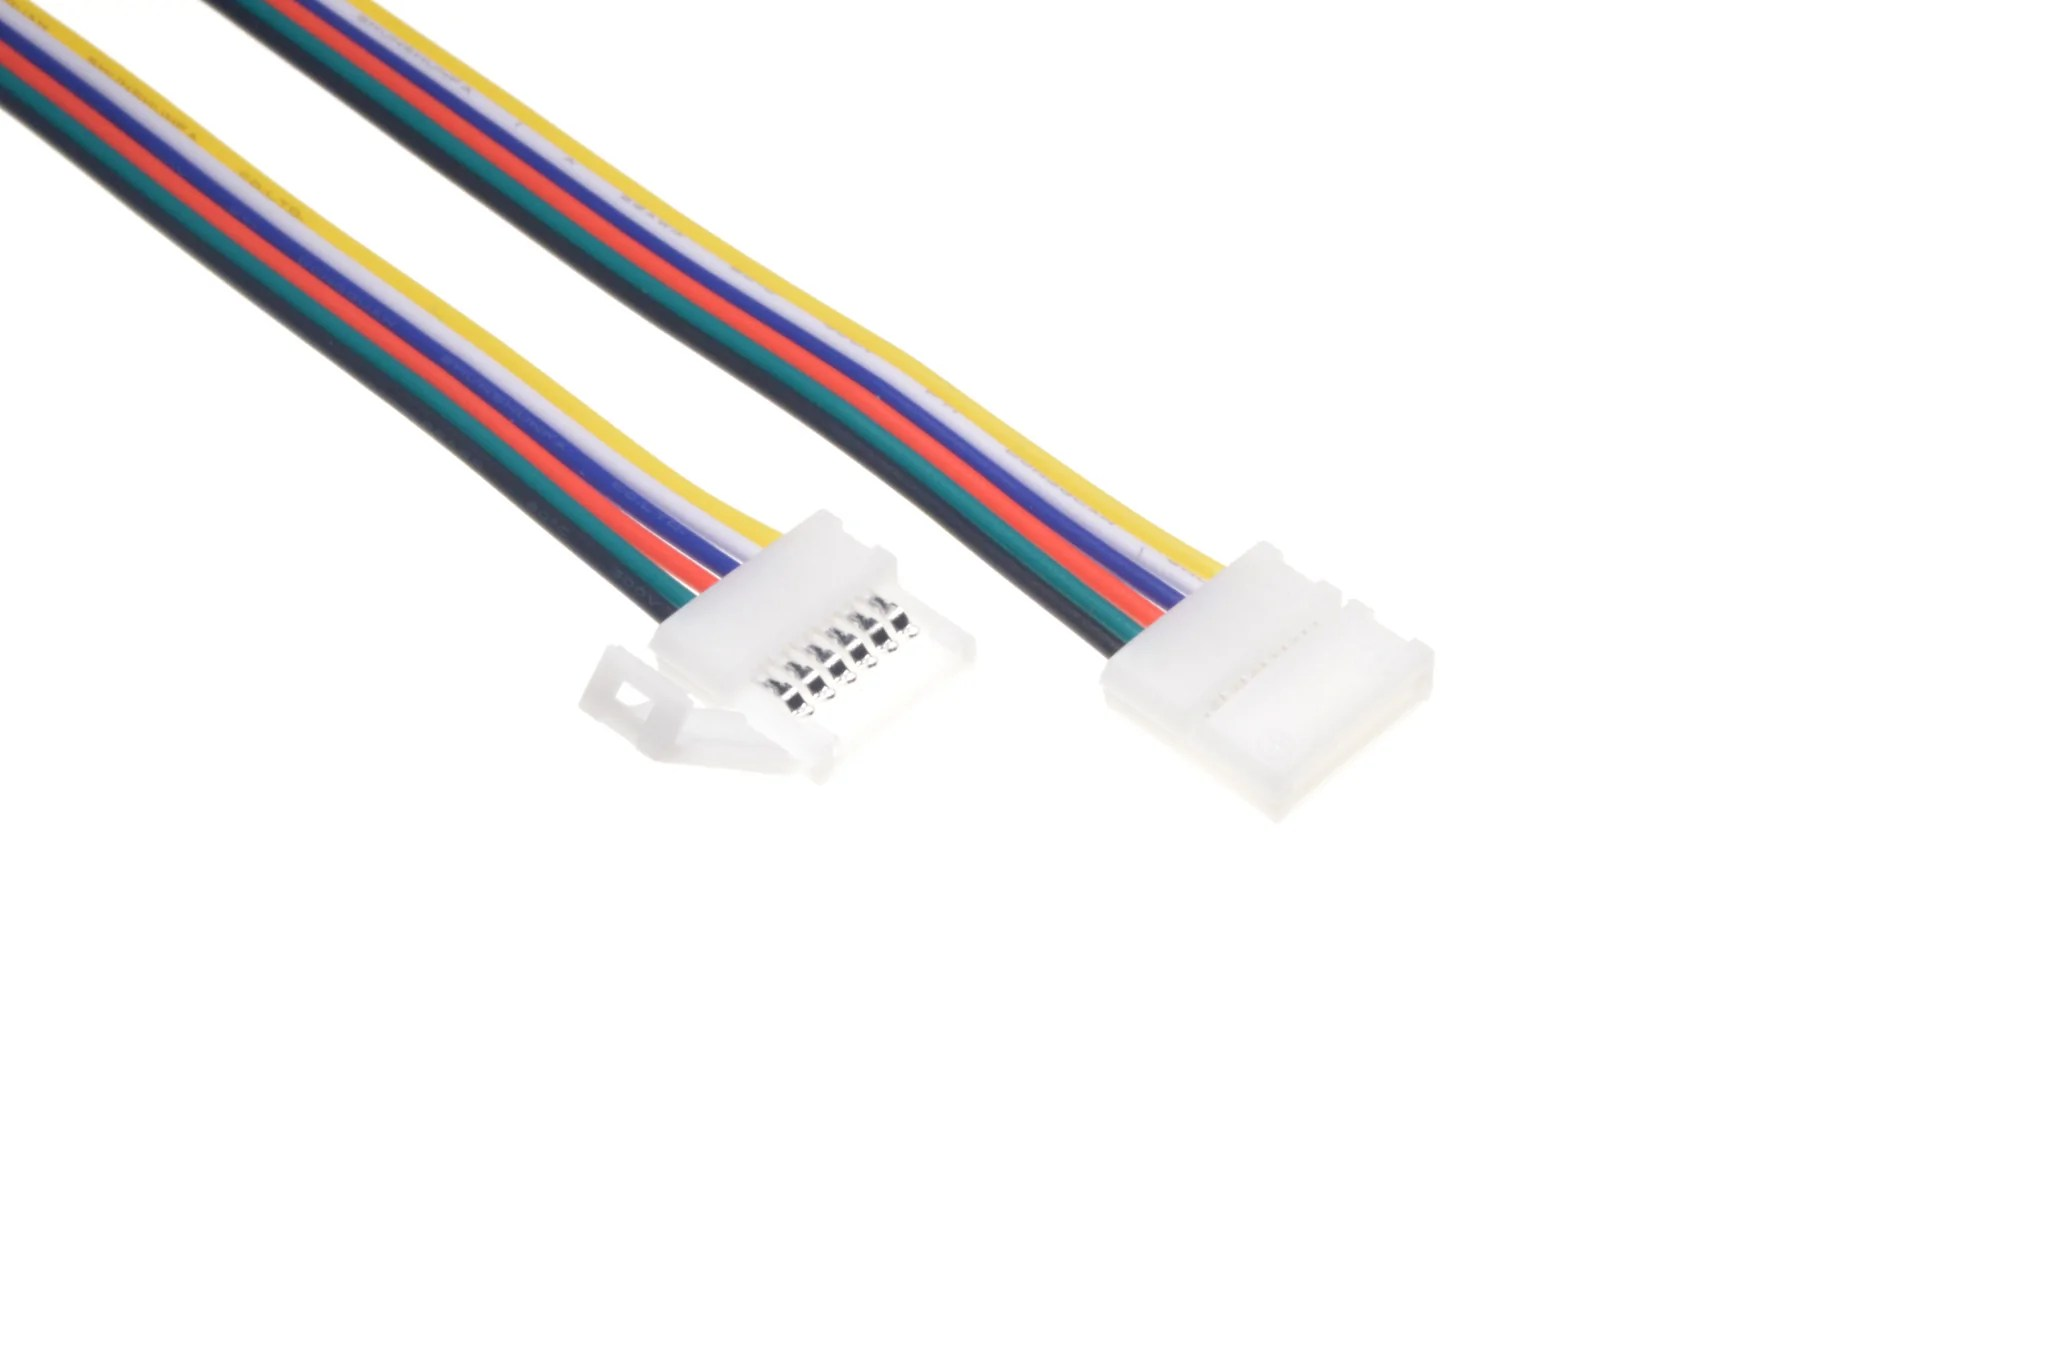 pn 3075 led strip to wire solderless connector cable for 5 in  [ 2048 x 1362 Pixel ]